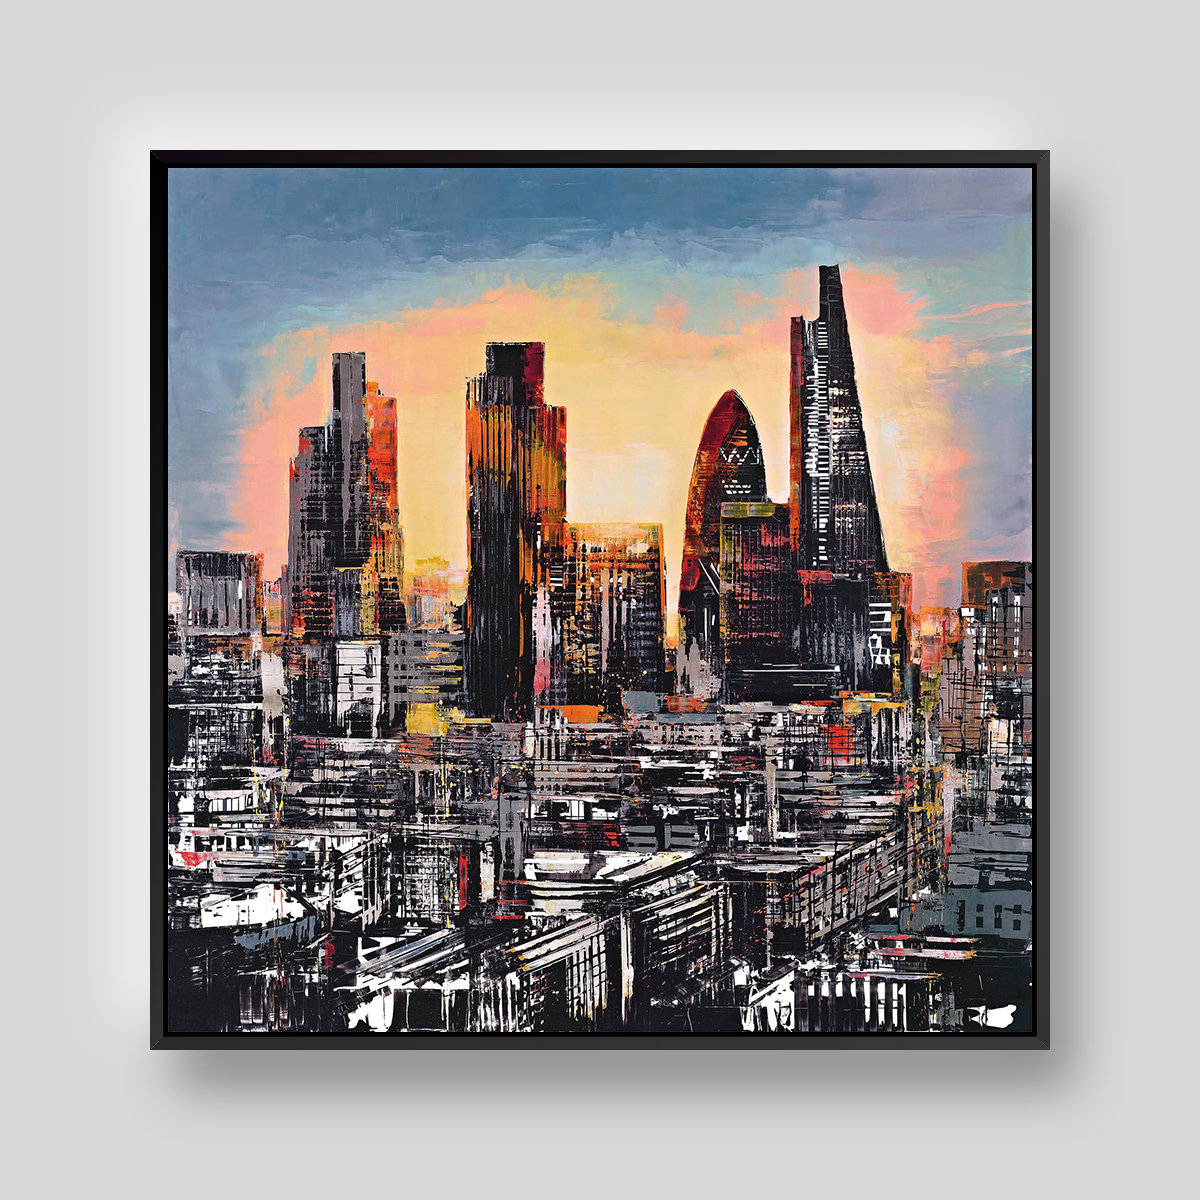 City Burst by Paul Kenton, UK contemporary cityscape artist, a limited edition print from his London Collection